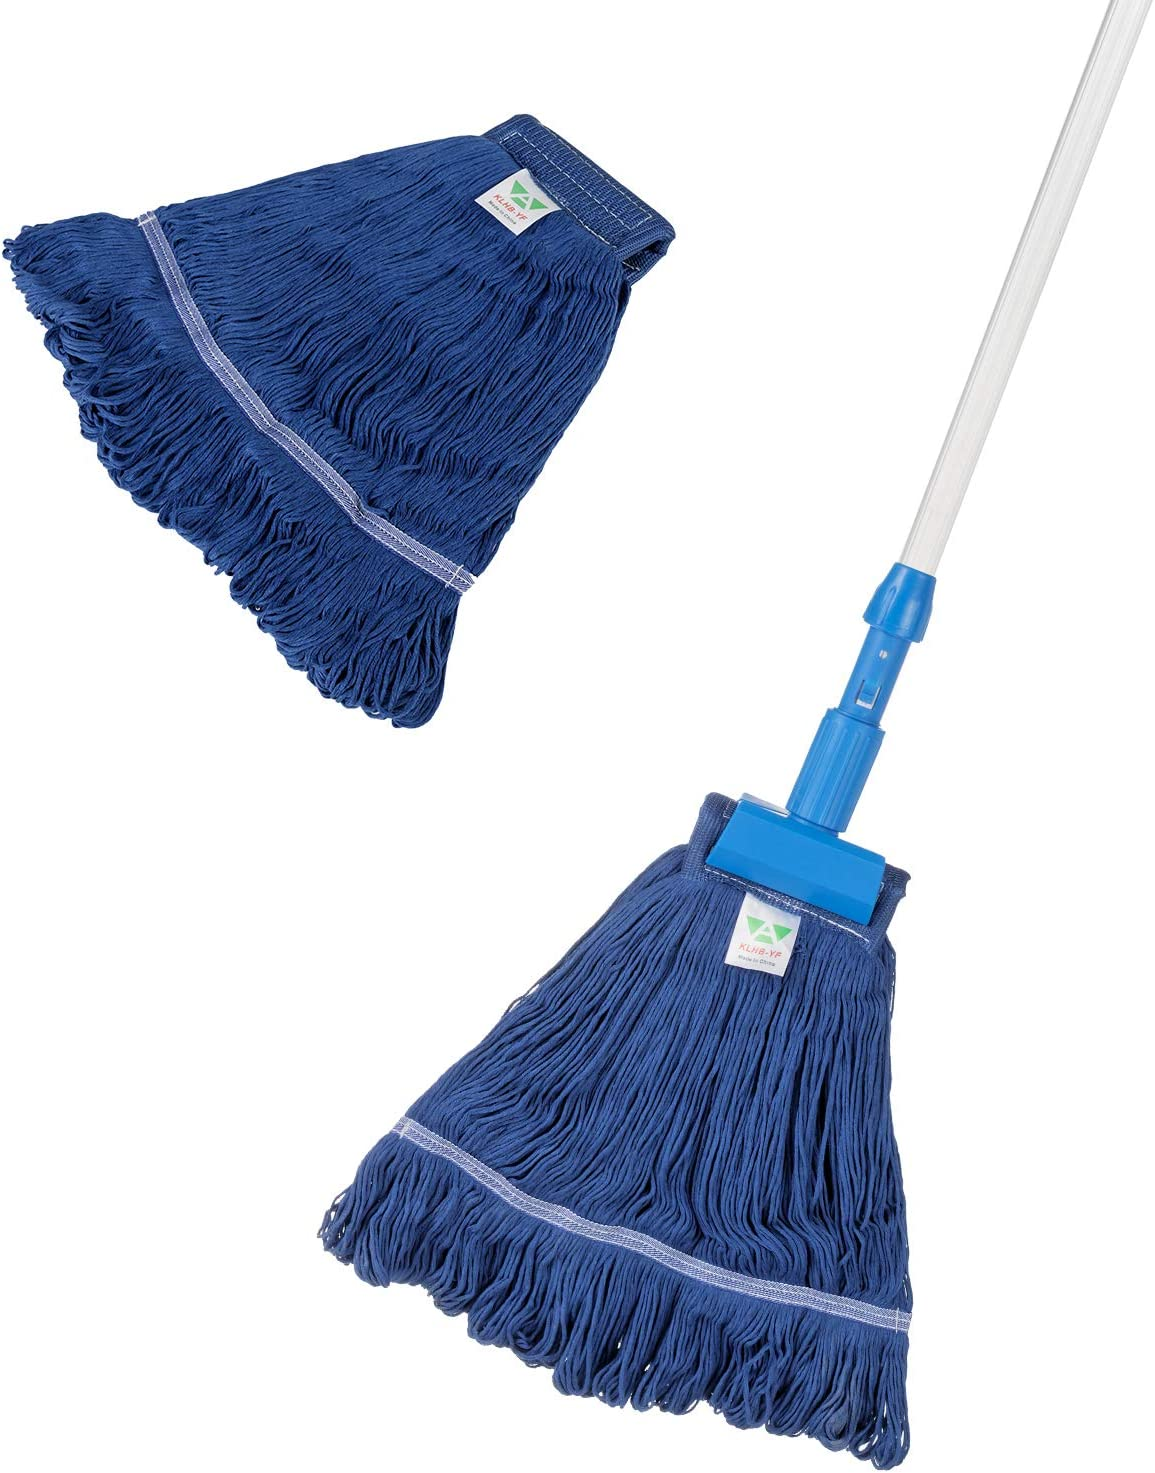 KLHB-YF blue wet Our shop Max 58% OFF most popular mop polyester-cotton yarn 51-inch a t with